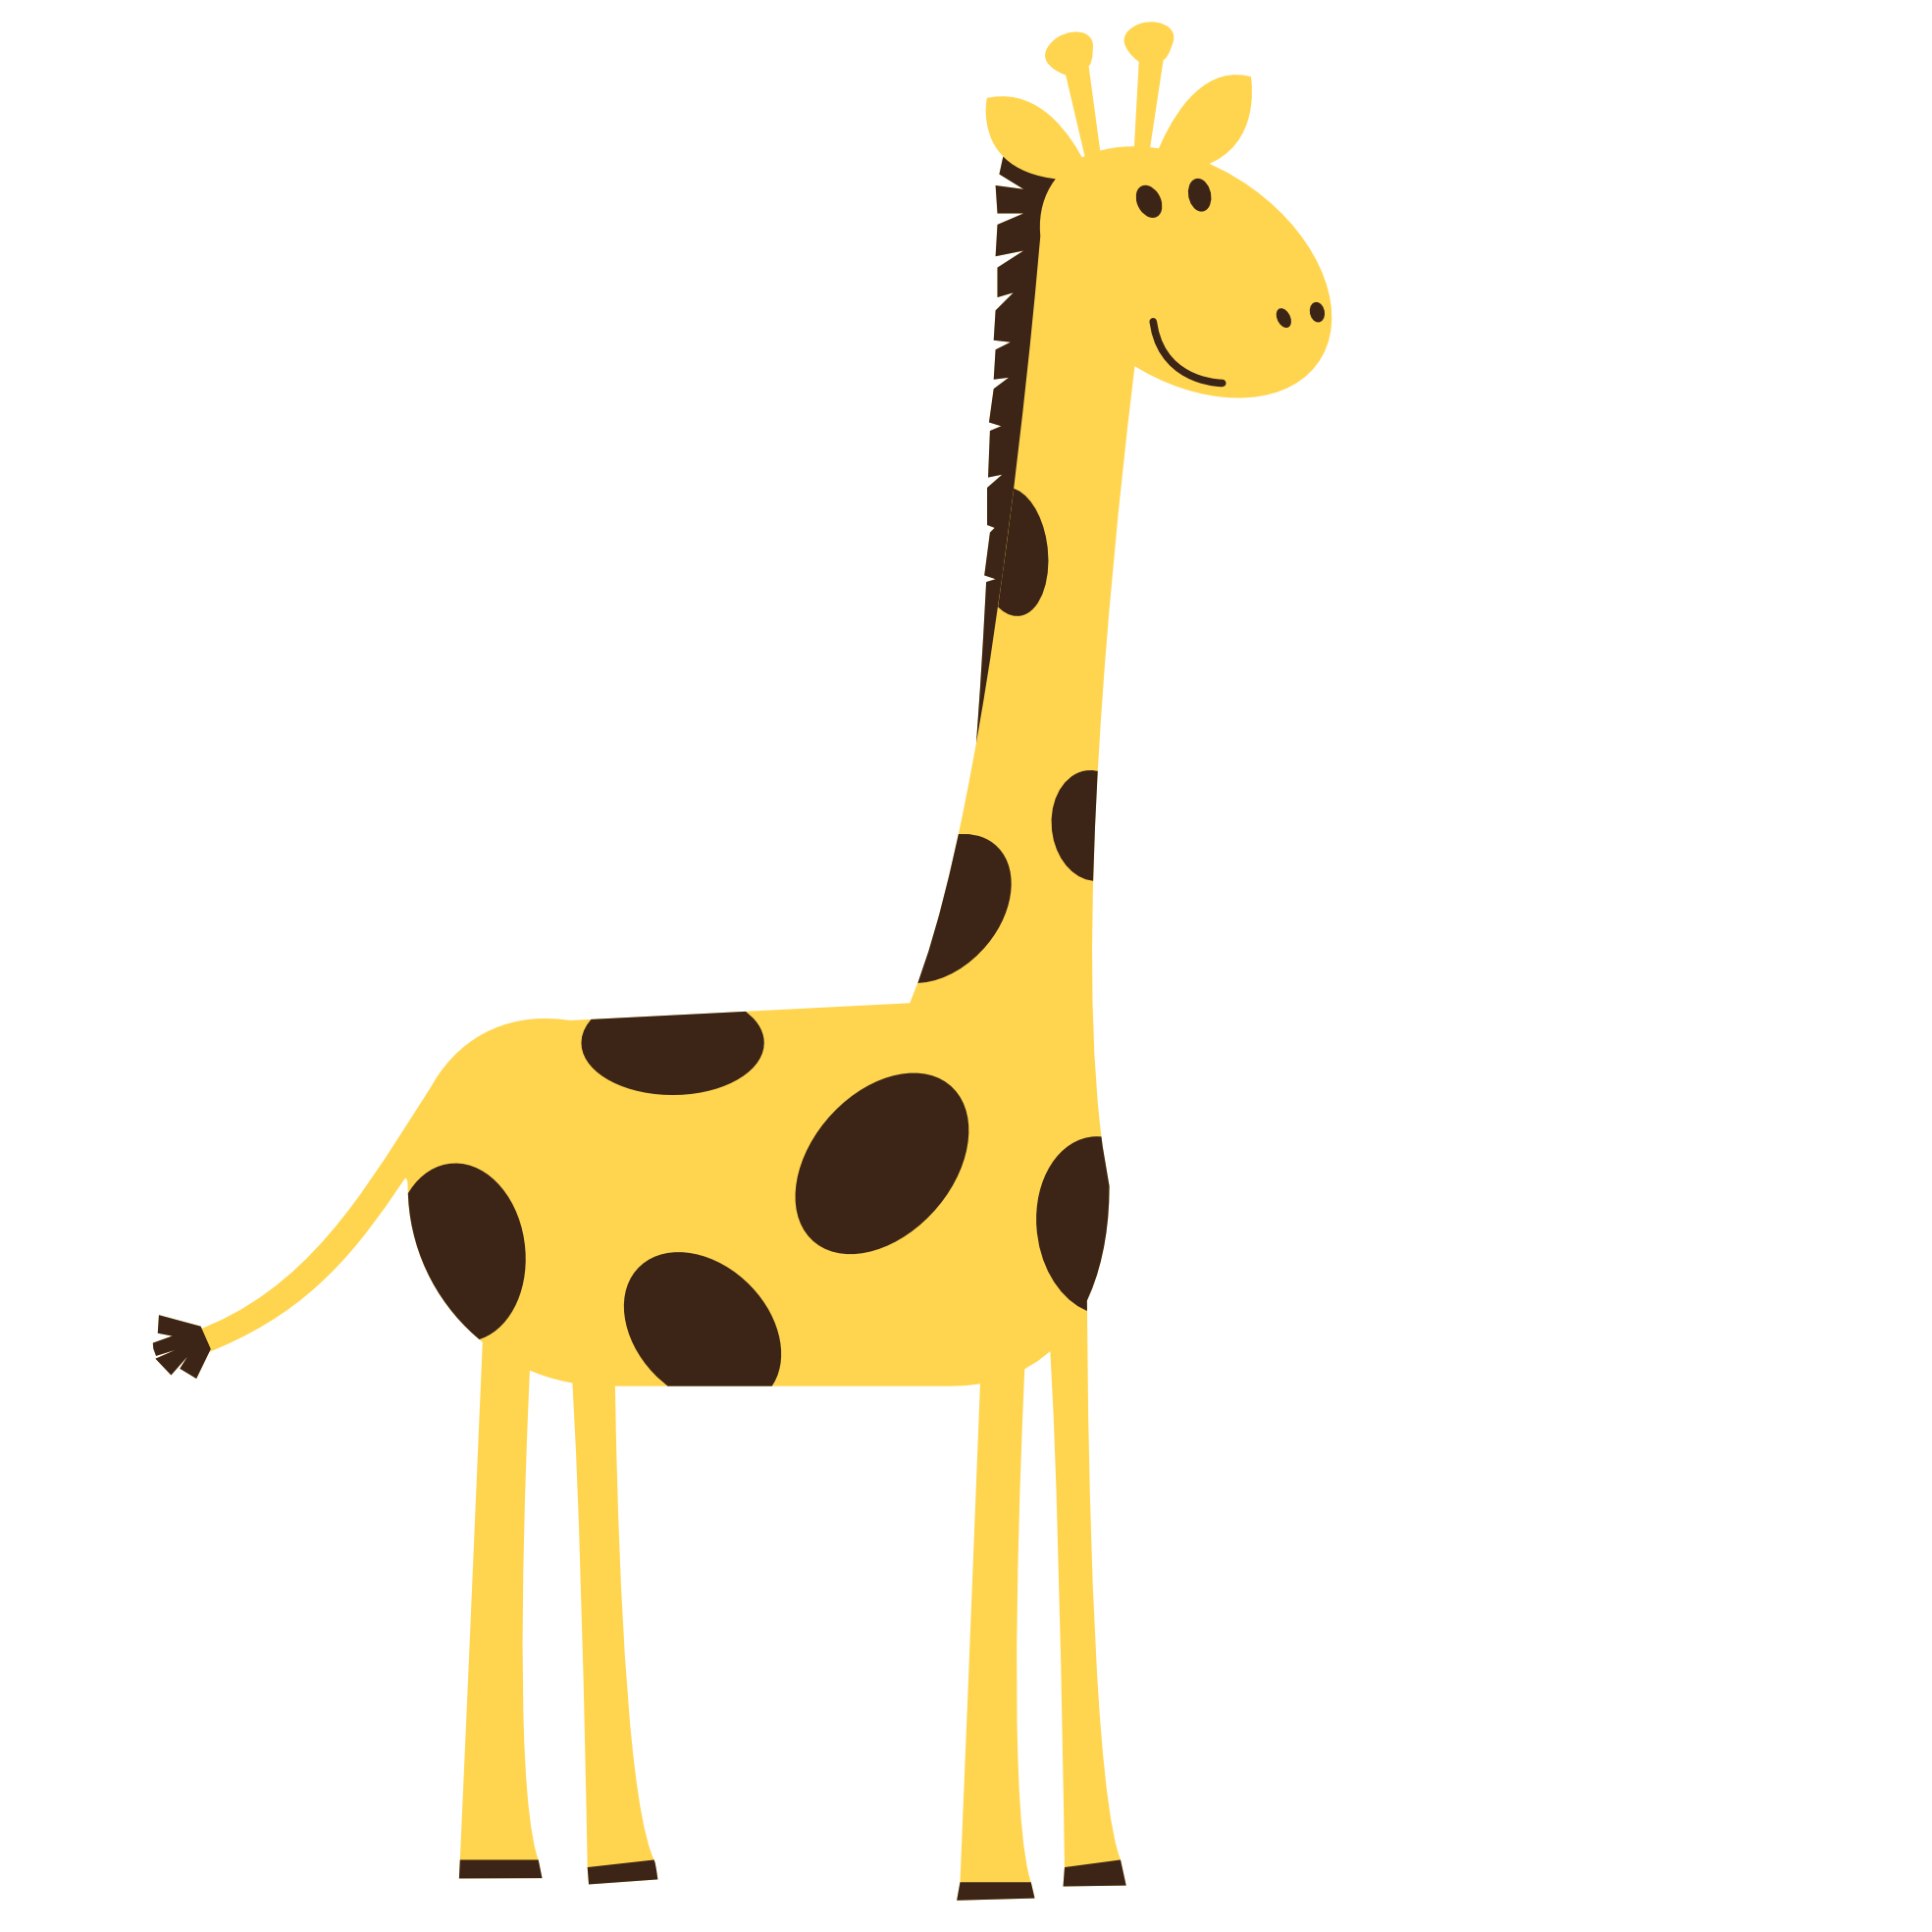 Couple clipart giraffe, Couple giraffe Transparent FREE for.